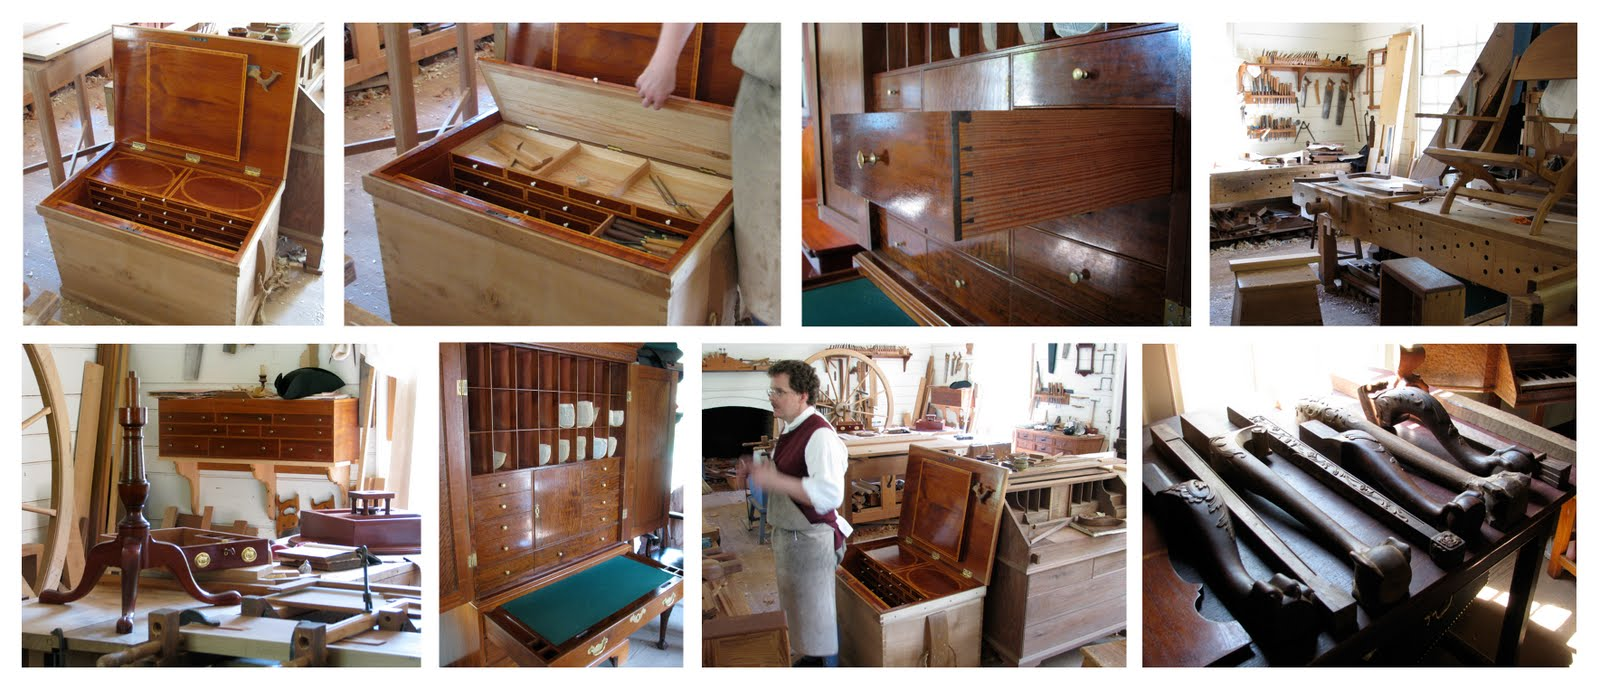 The Village Carpenter: Joiners And Cabinetmakers At Colonial Williamsburg